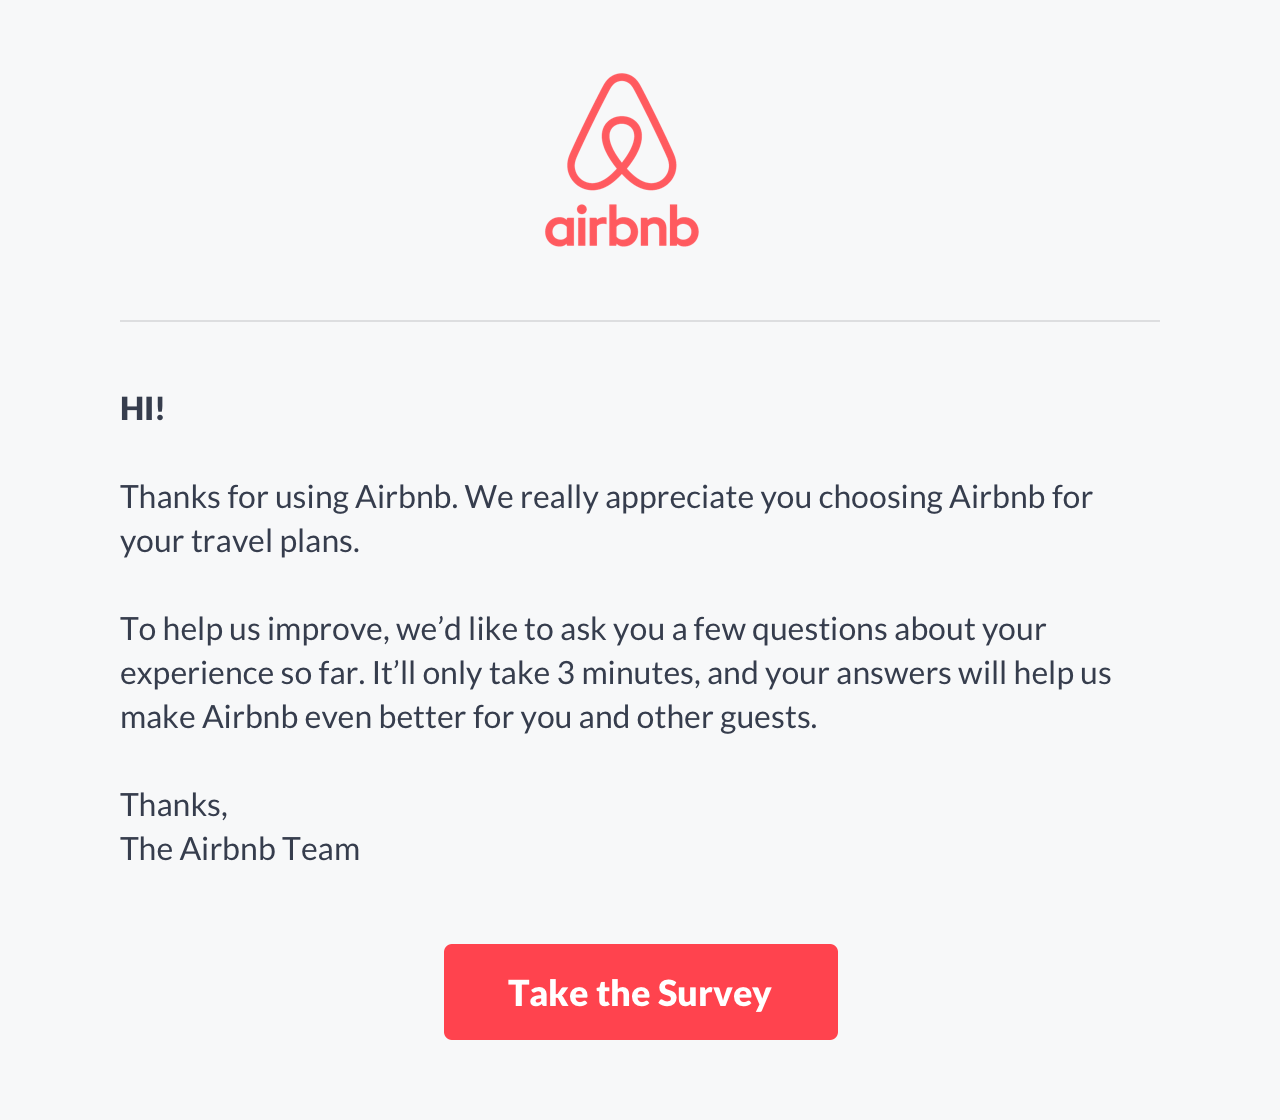 Airbnb invitation to take a survey